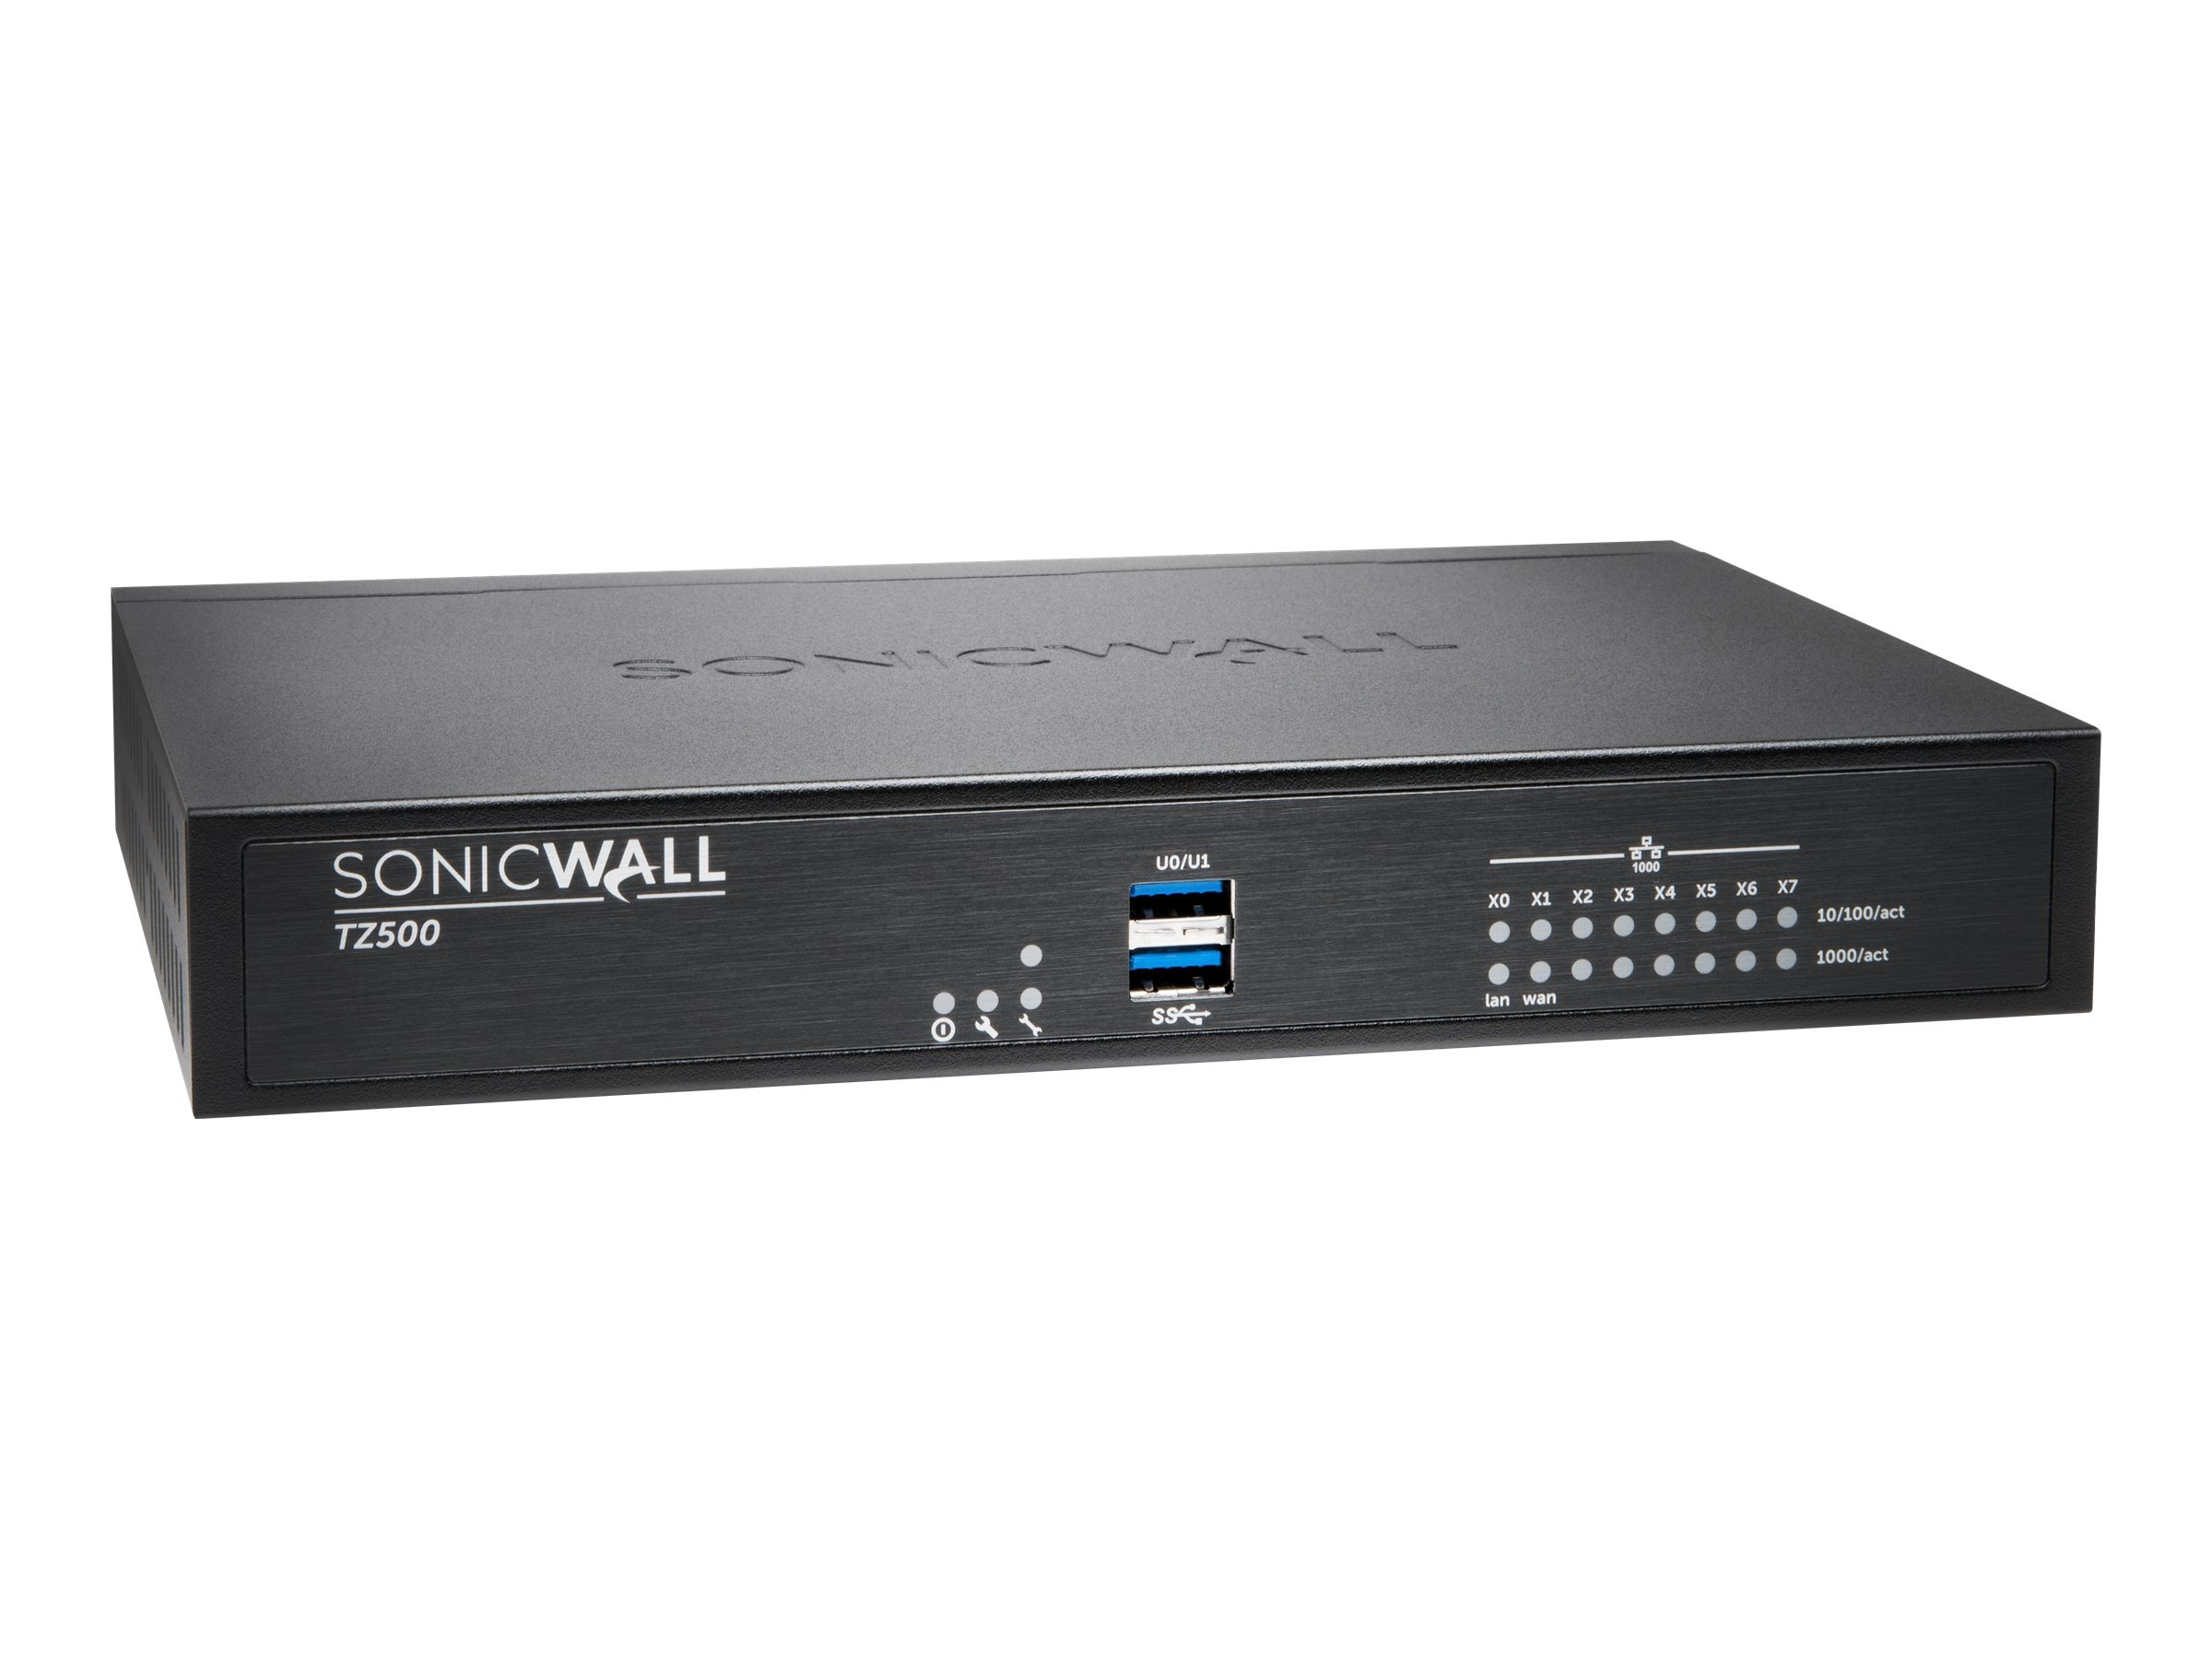 SonicWALL 01-SSC-1711 Image 3